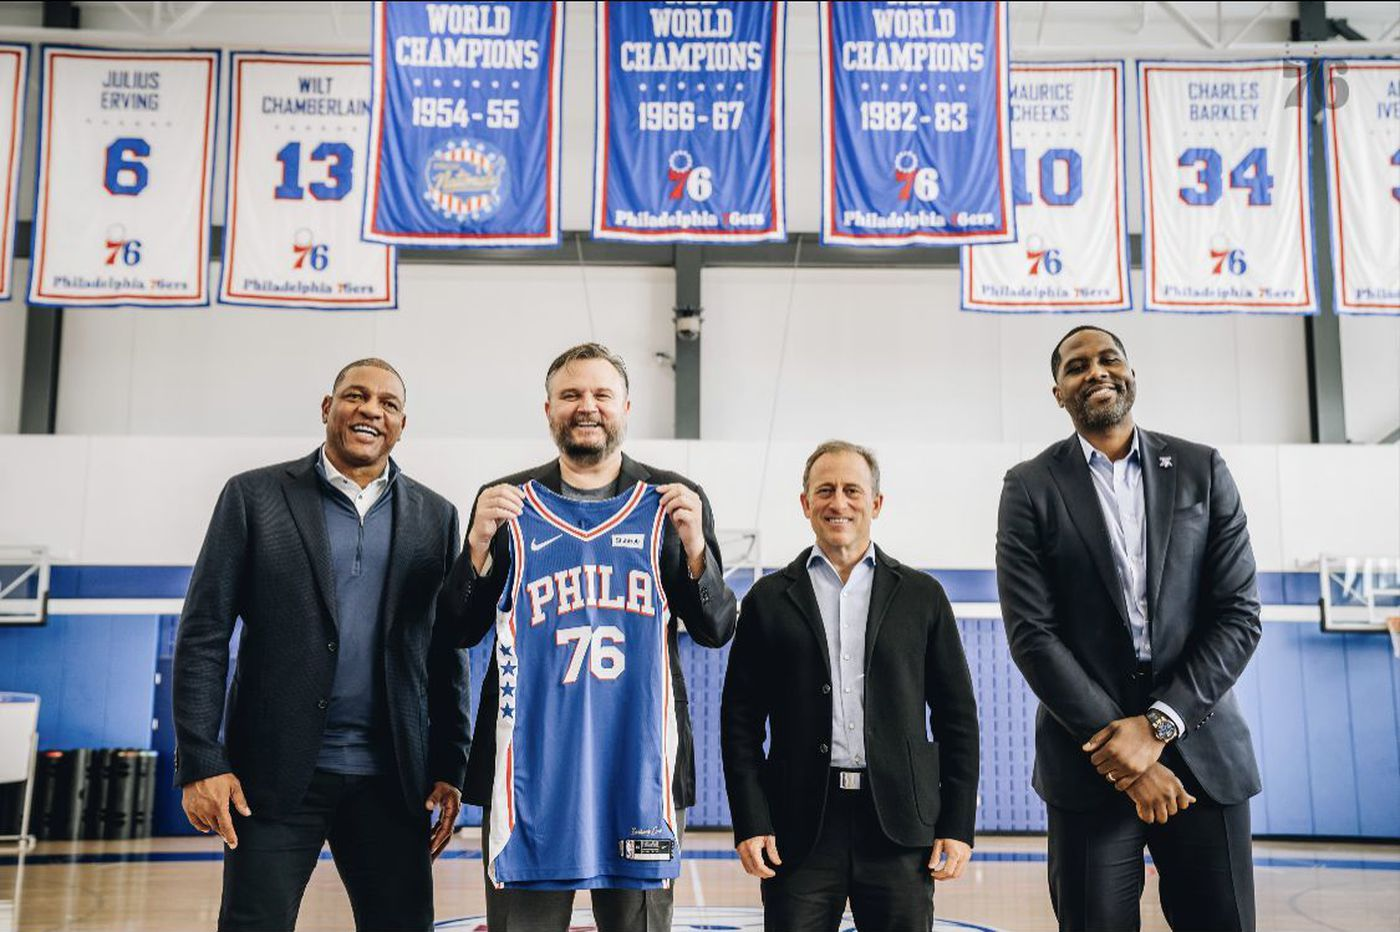 In his first day on the job, Daryl Morey showed why the Sixers hired him | David Murphy